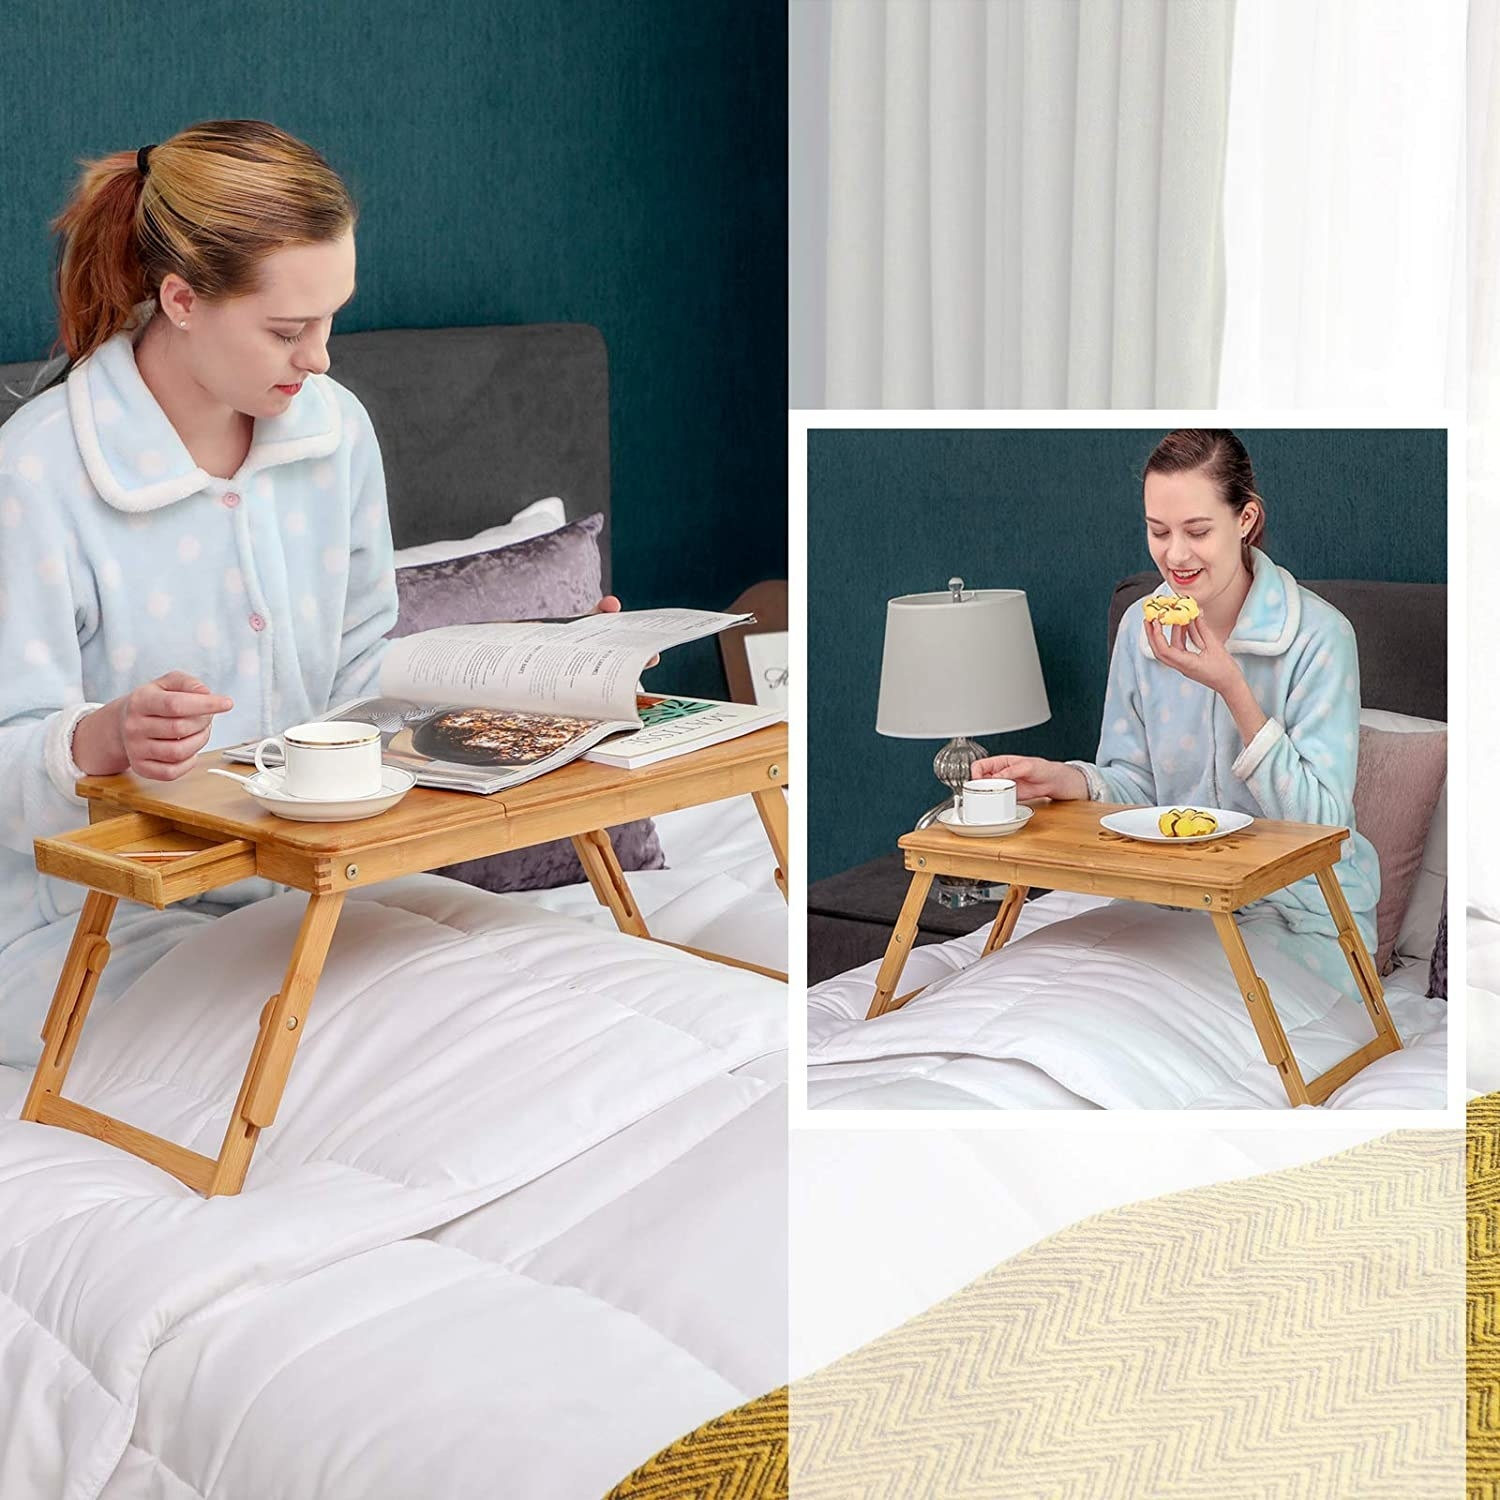 Product photo showing the SONGMICS bamboo laptop desk being used by a model to eat and read in bed